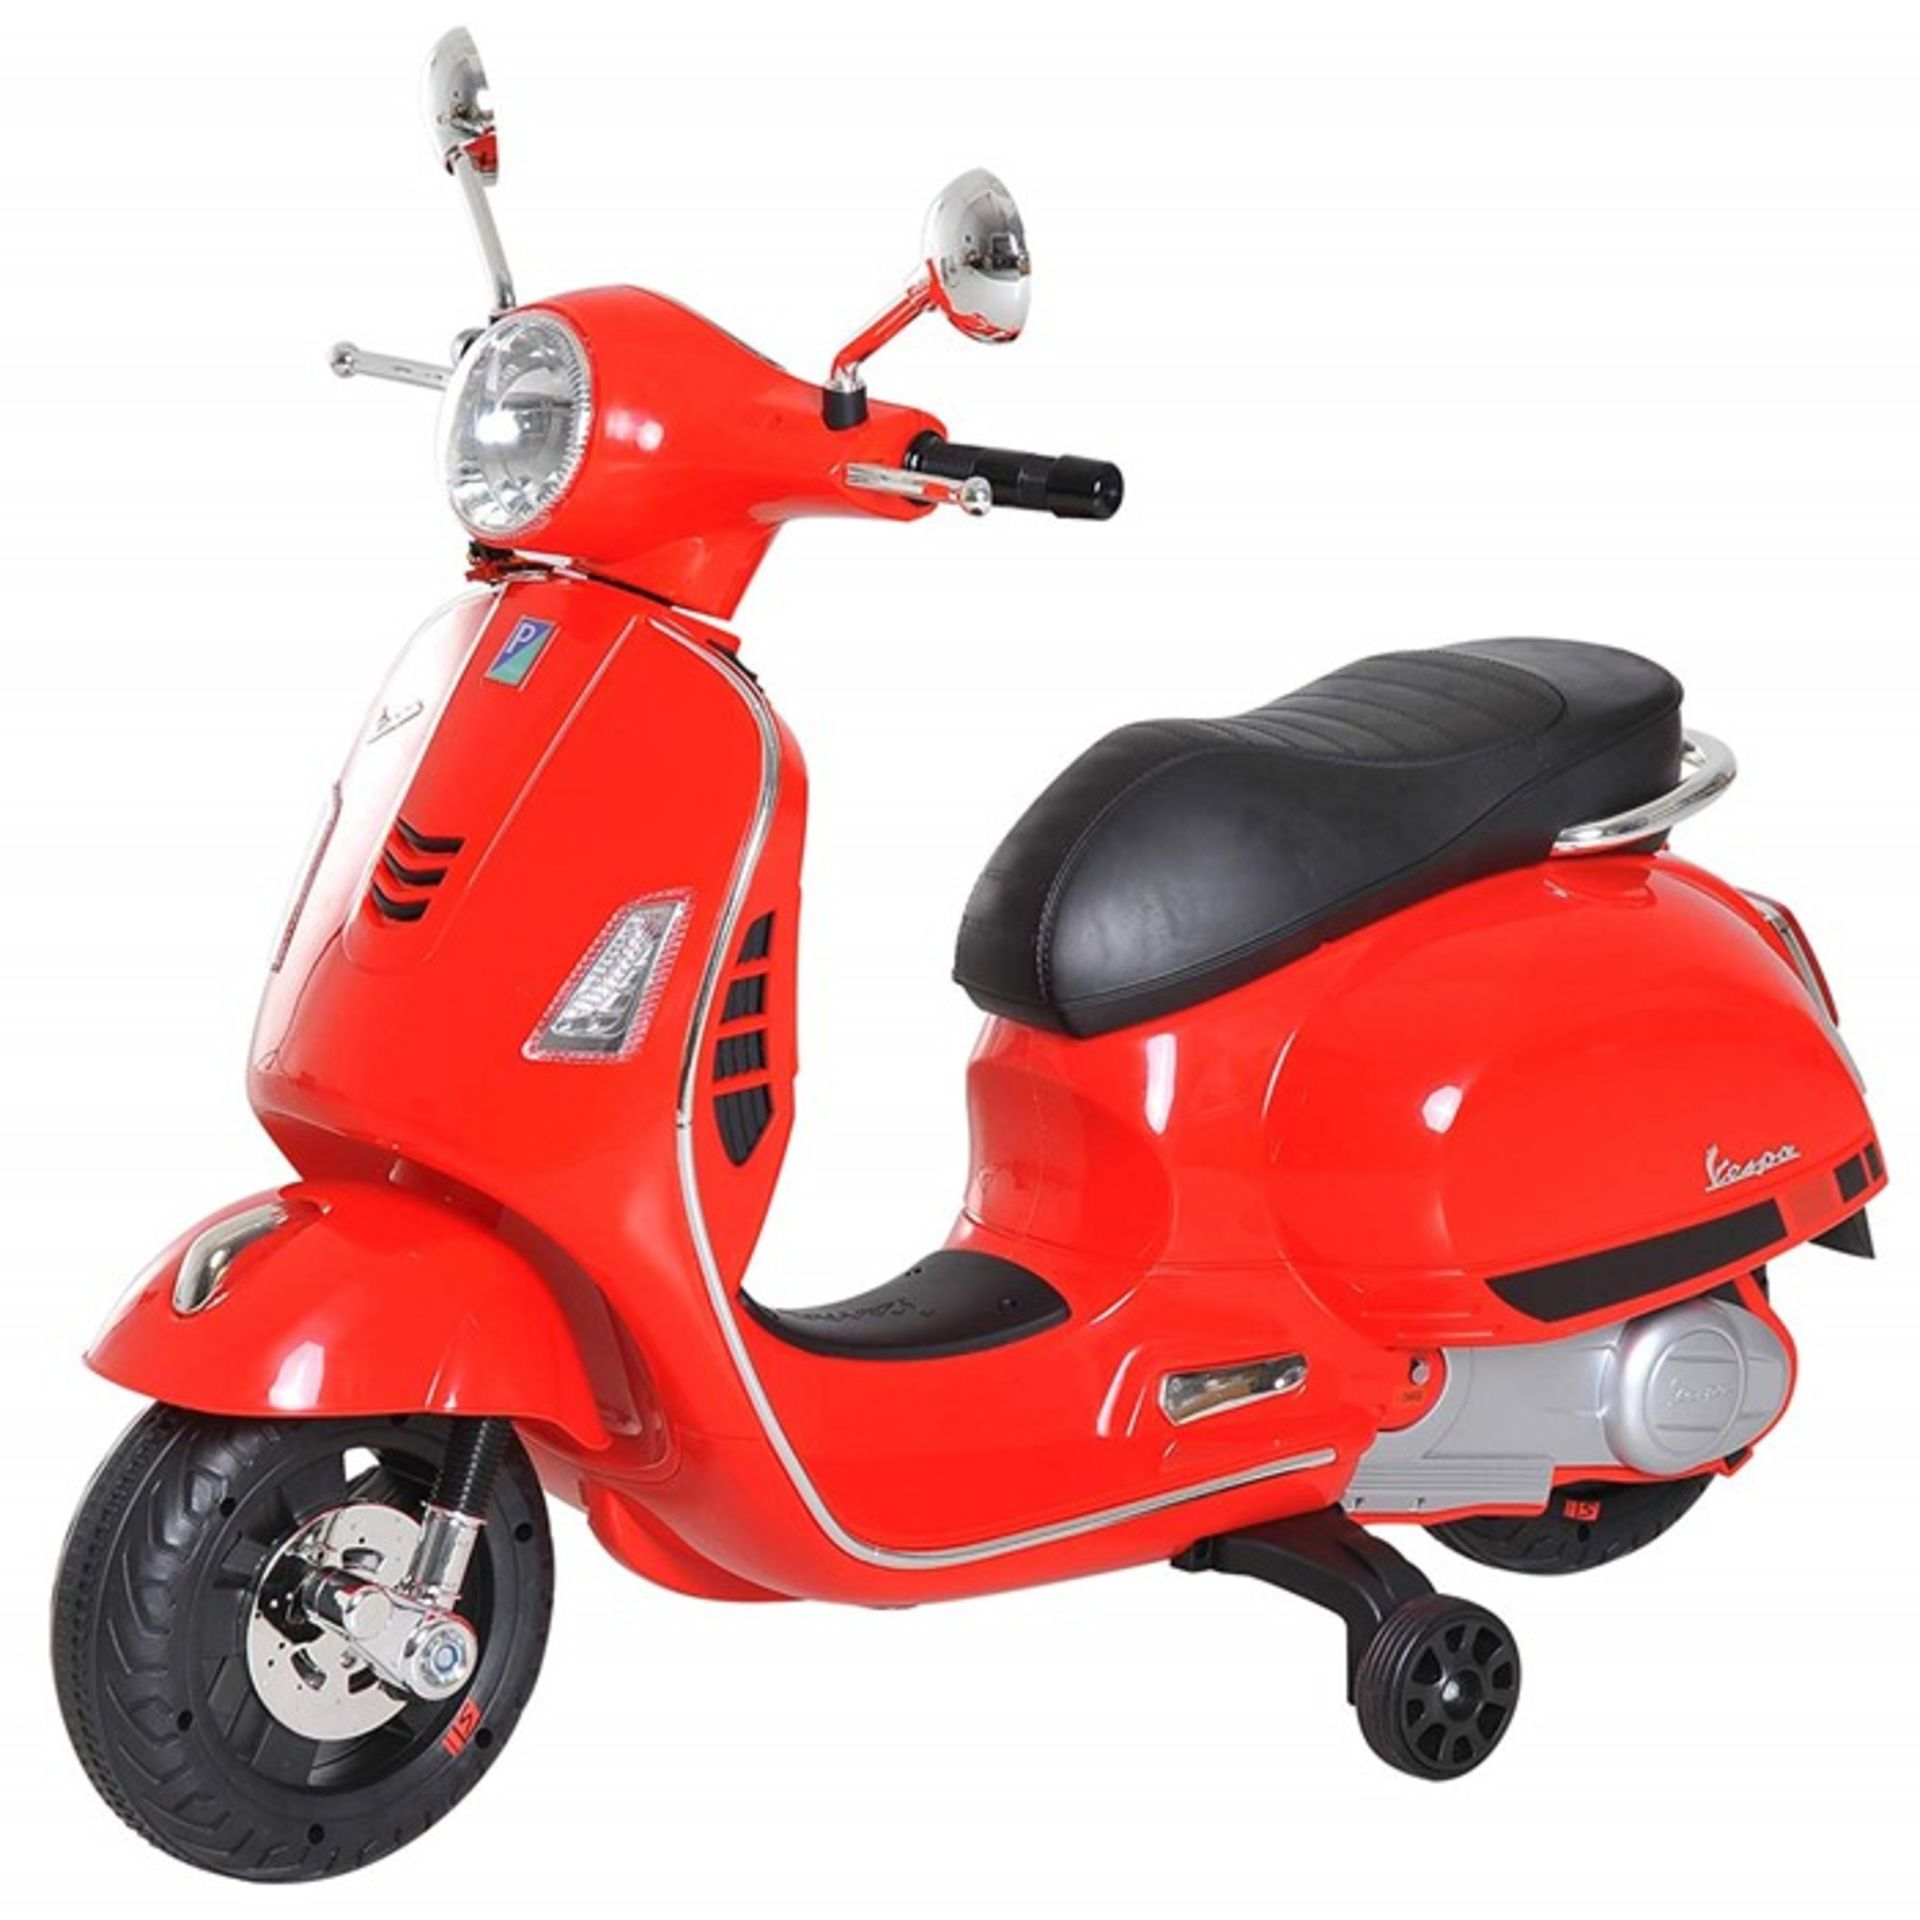 Lot 24 - 1 BOXED AS NEW CHILDRENS AGE 3+ VESPA RIDE ON SCOOTER IN RED RRP £81.99